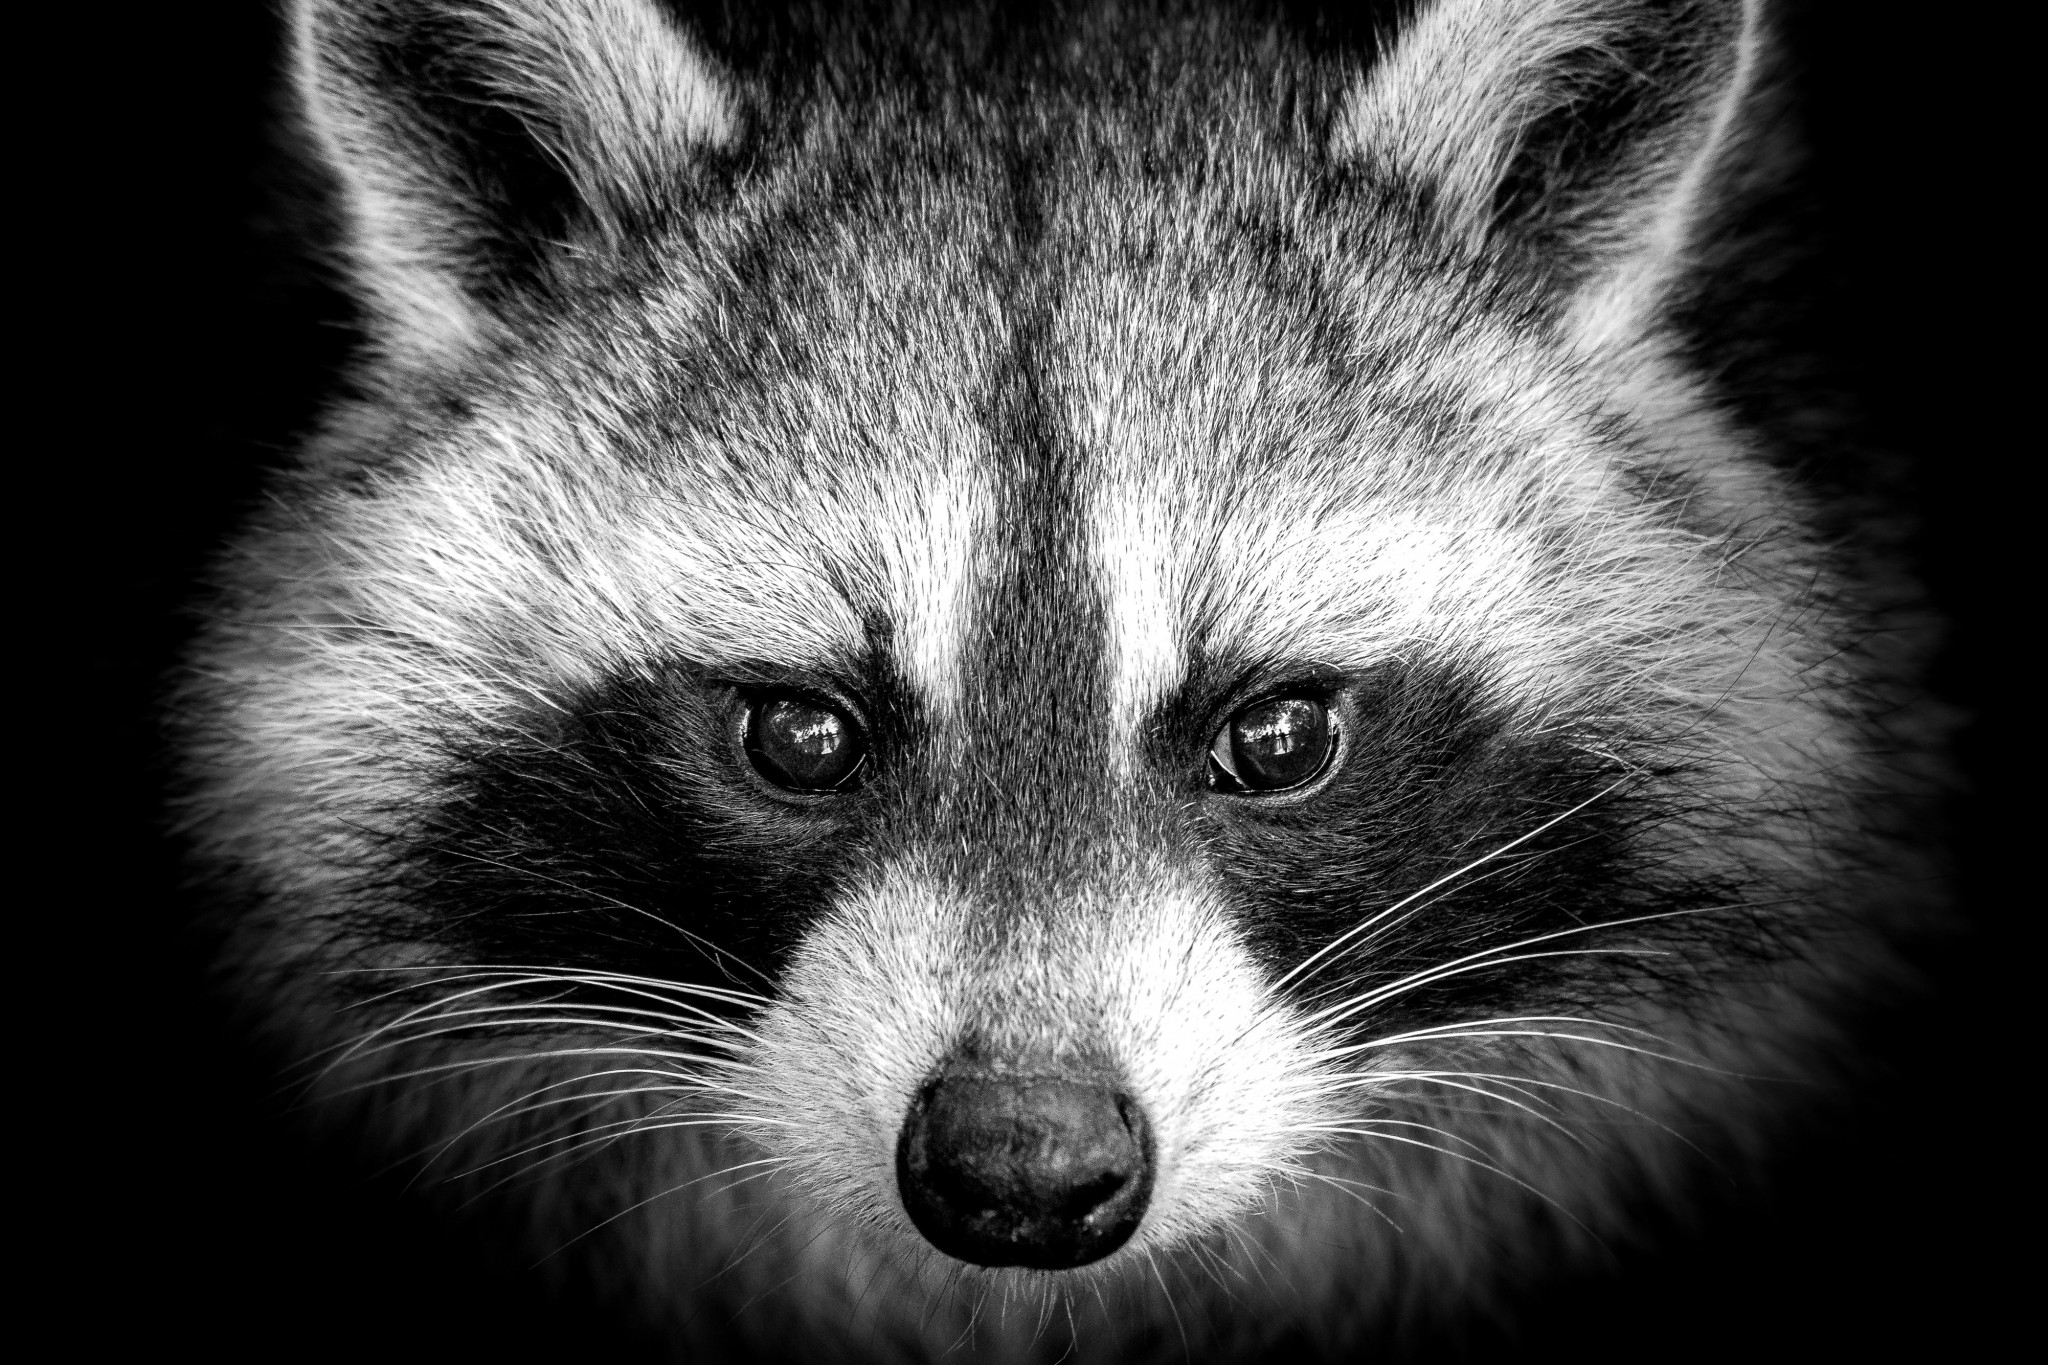 Raccoon Feces Cleanup In Alabama